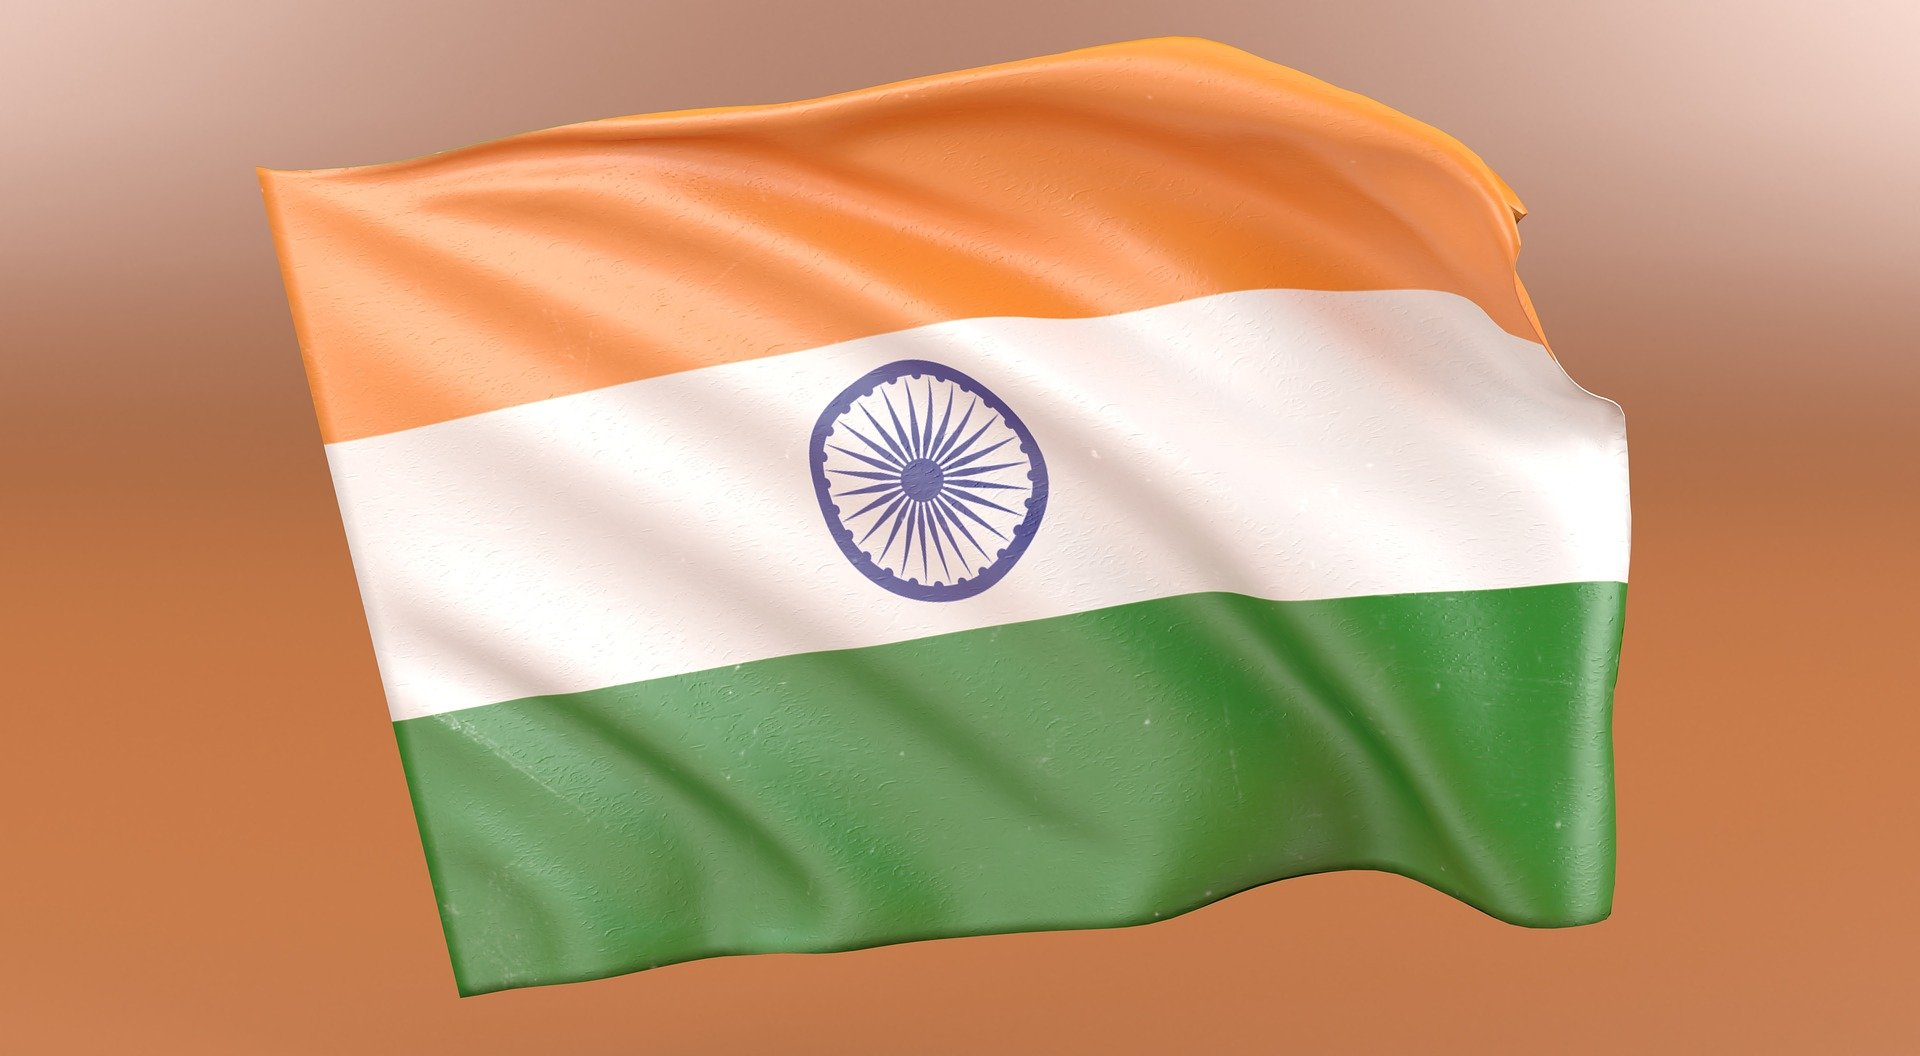 Crypto Hardware Wallets to Seize, Proposes Indian Authorities